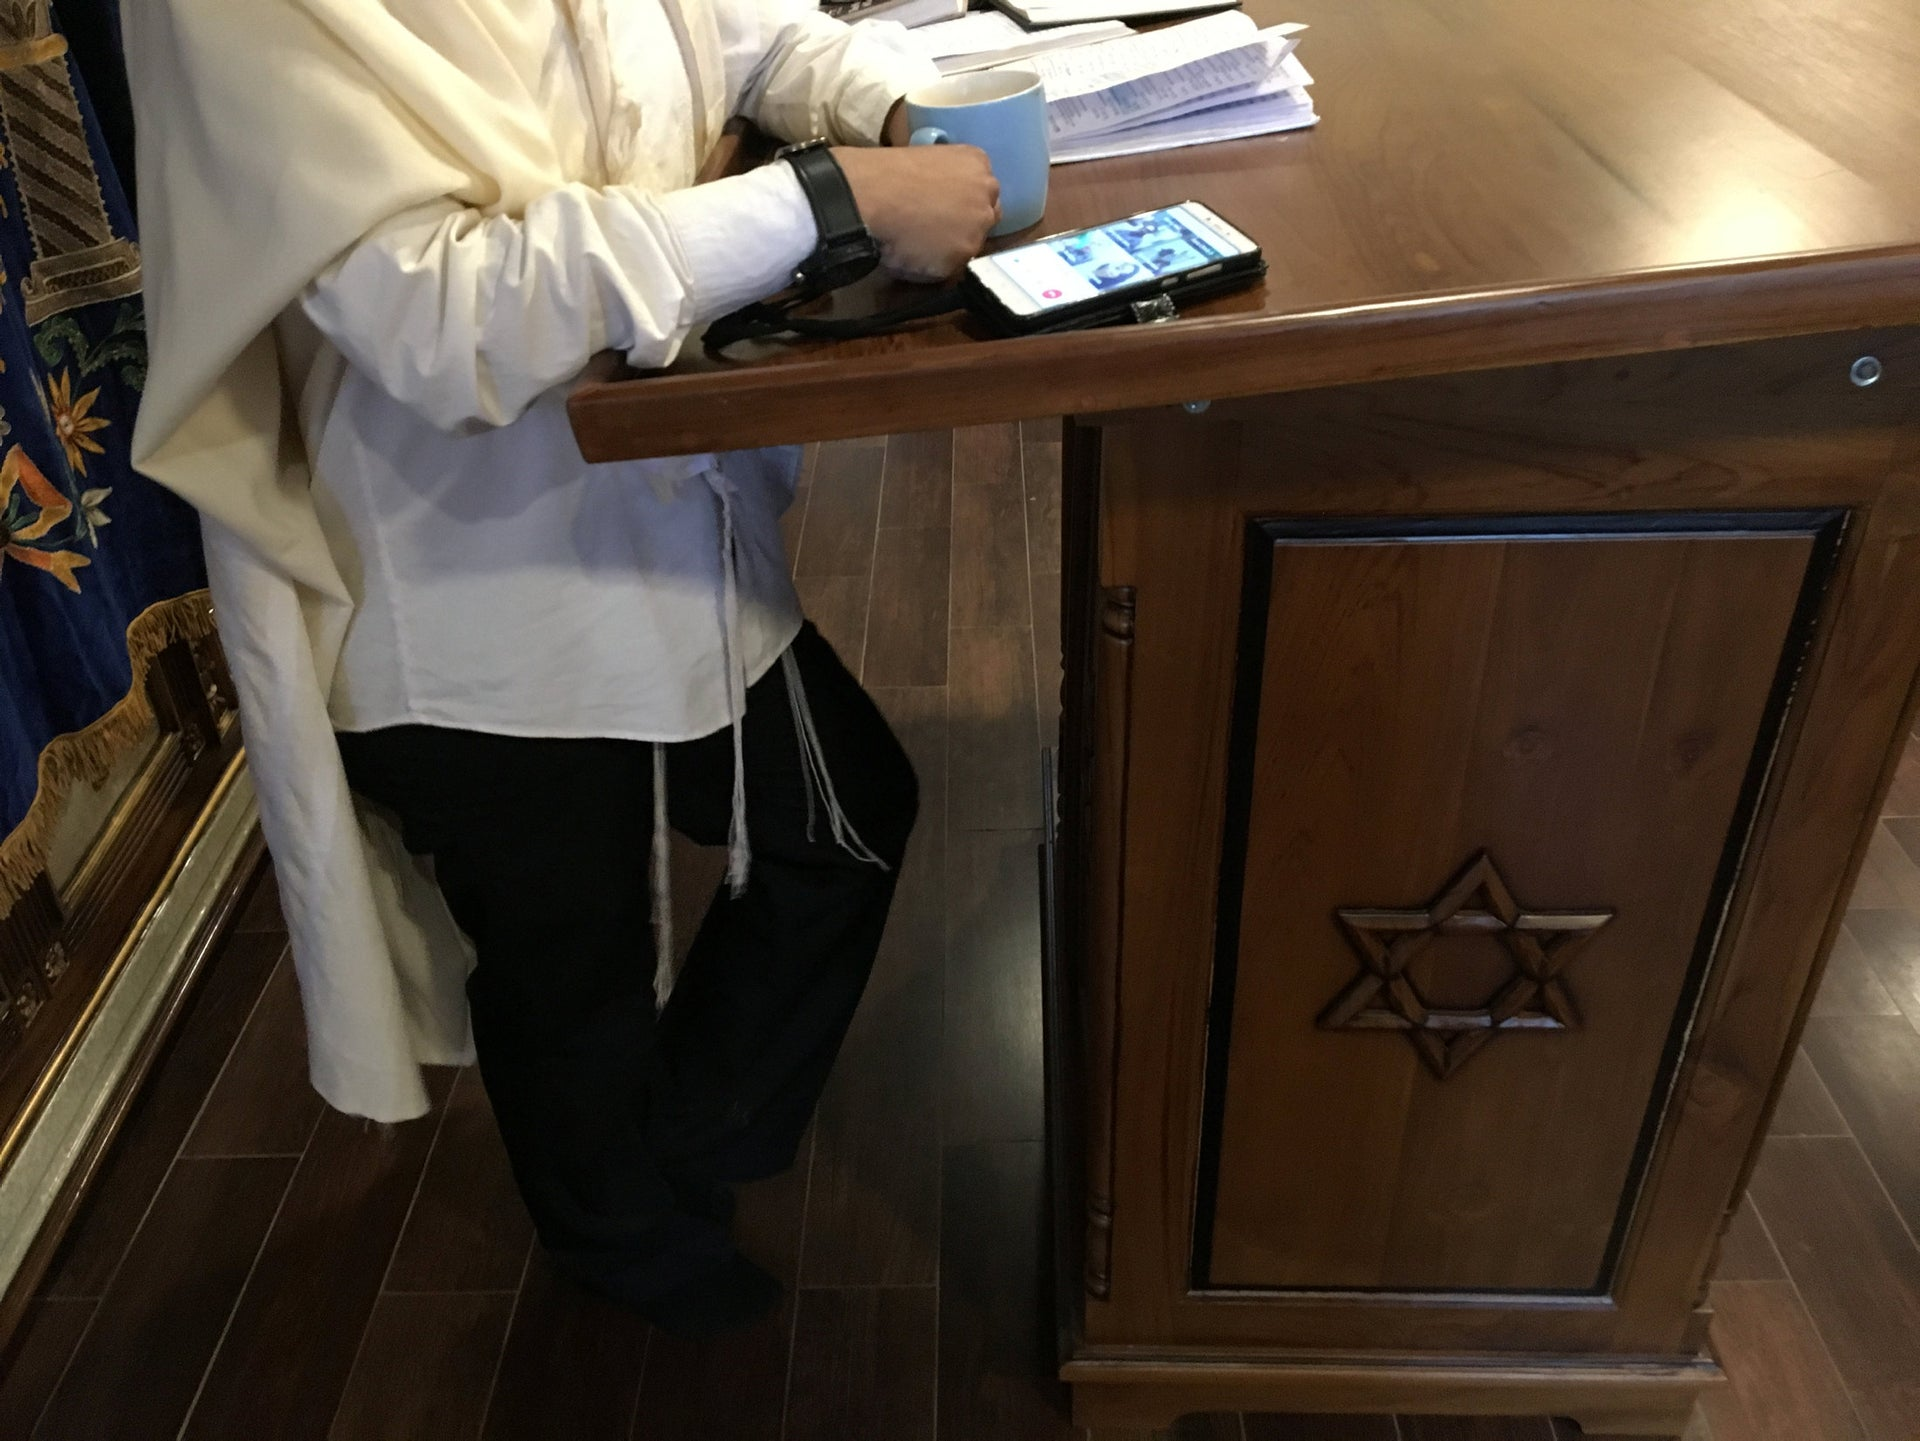 Although electronics are not permitted during Shabbat, Rabbi Benjamin Meijer Verbrugge uses Line's video-conferencing application to allow people from across the Indonesian archipelago and East Timor to participate in the service.